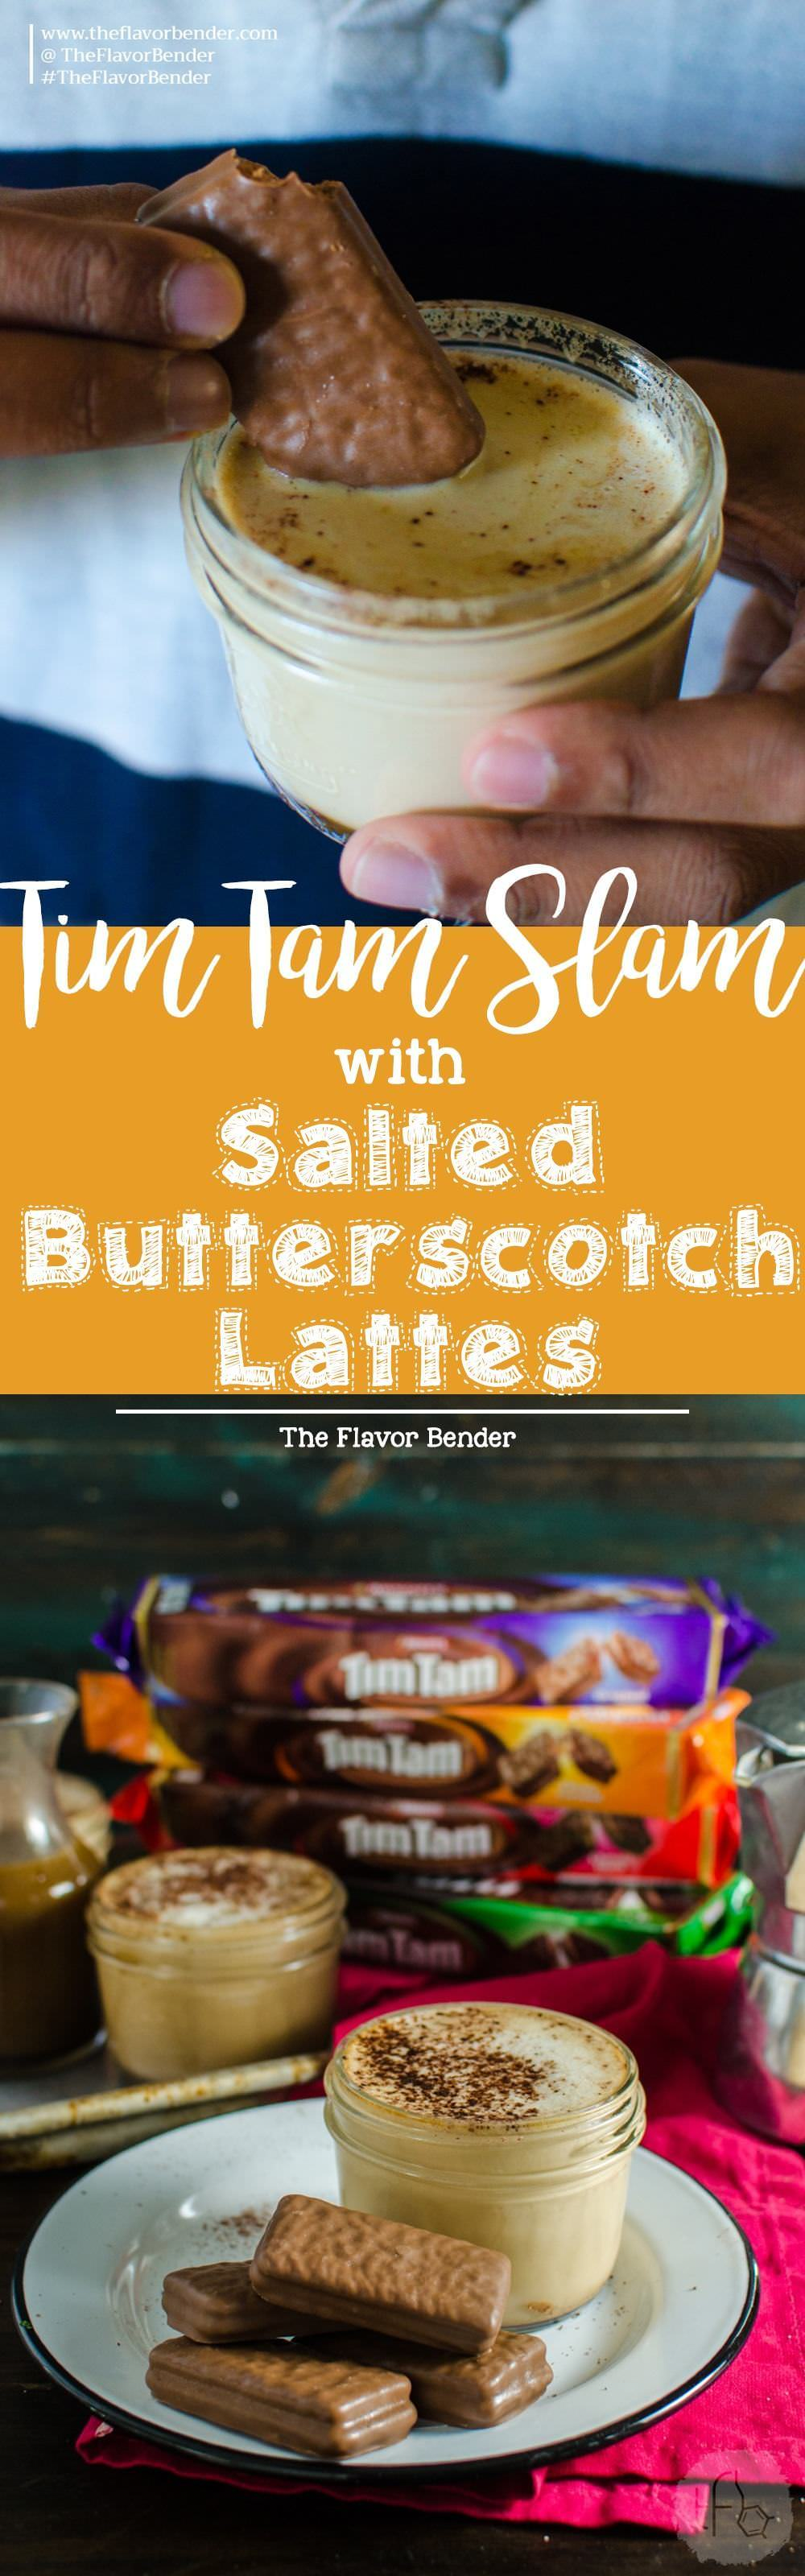 Mini Salted Butterscotch Latte with a Tim Tam Slam - Bring some seasonal indulgence with this easy Butterscotch latte and enjoy it with an Aussie classic - The Tim Tam Slam! Get the tips to get the most out of and make the best Tim Tam Slams! Get the recipe from theflavorbender.com Butterscotch | Latte | Coffee | Drinks | Non alcoholic | Tim Tam Slam |